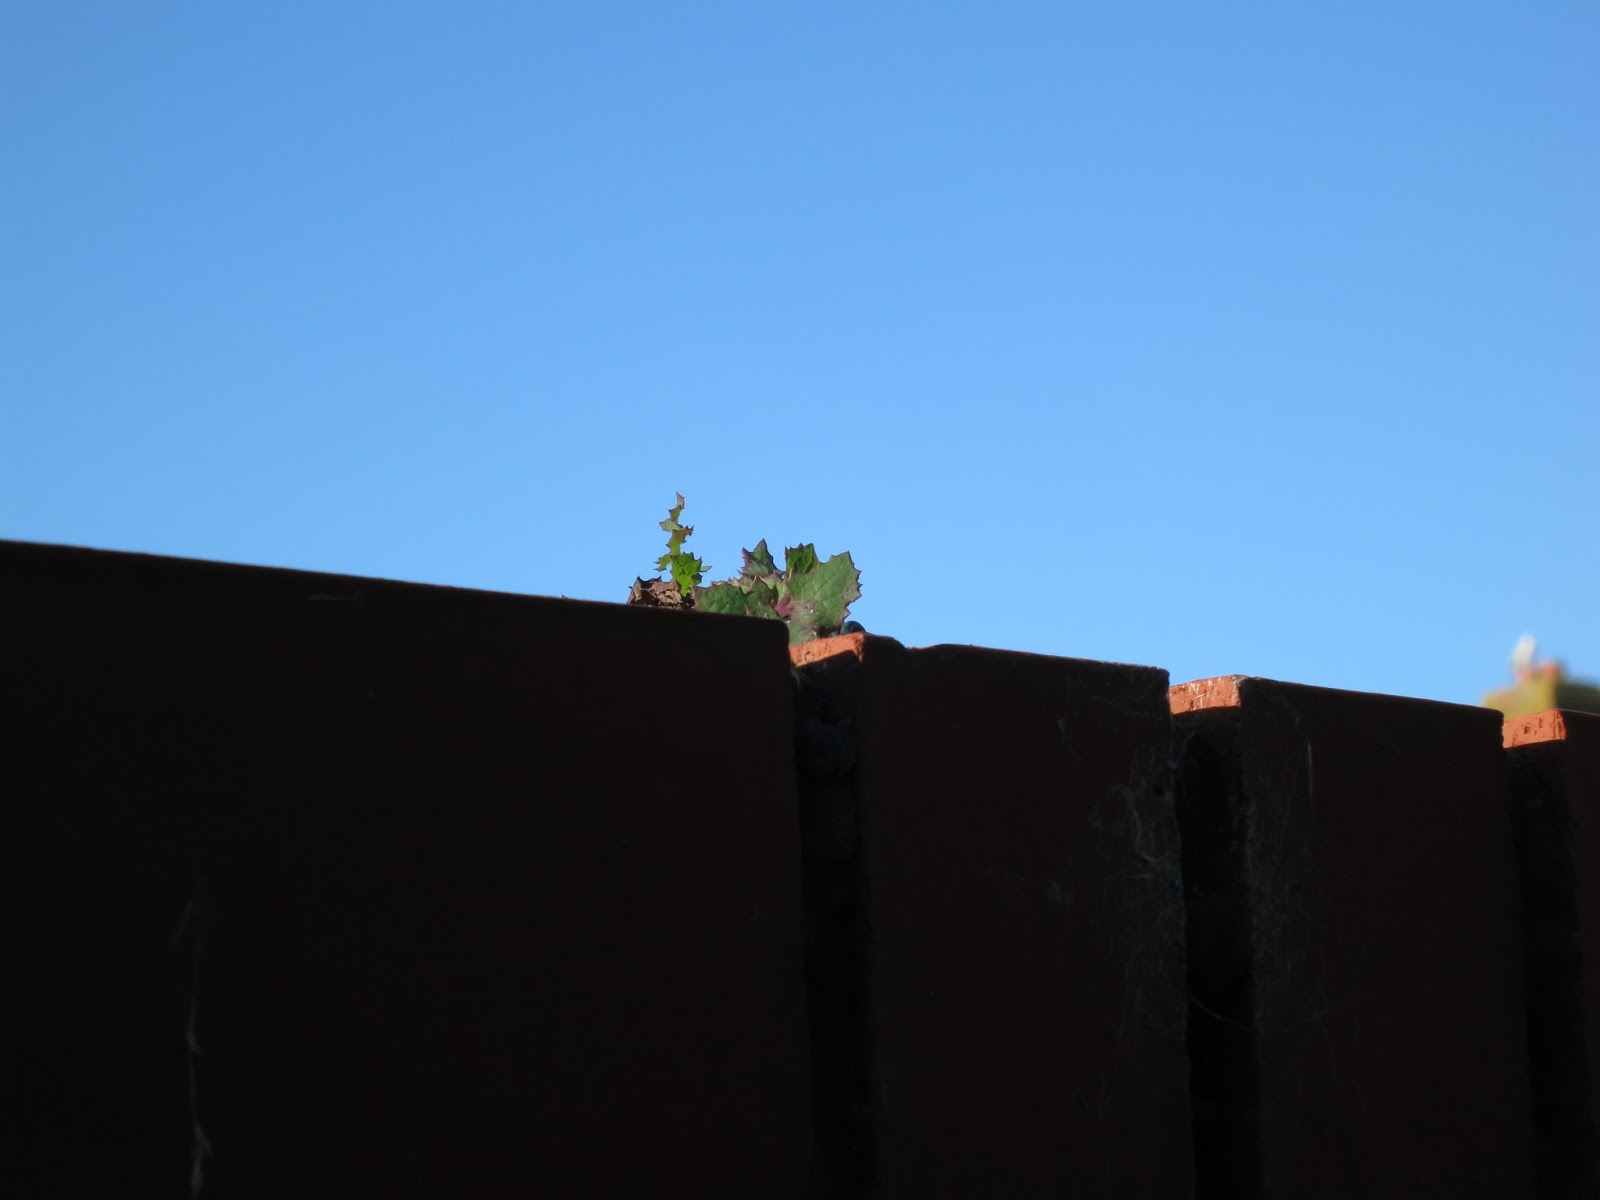 Green leaved plant on top of red brick wall.